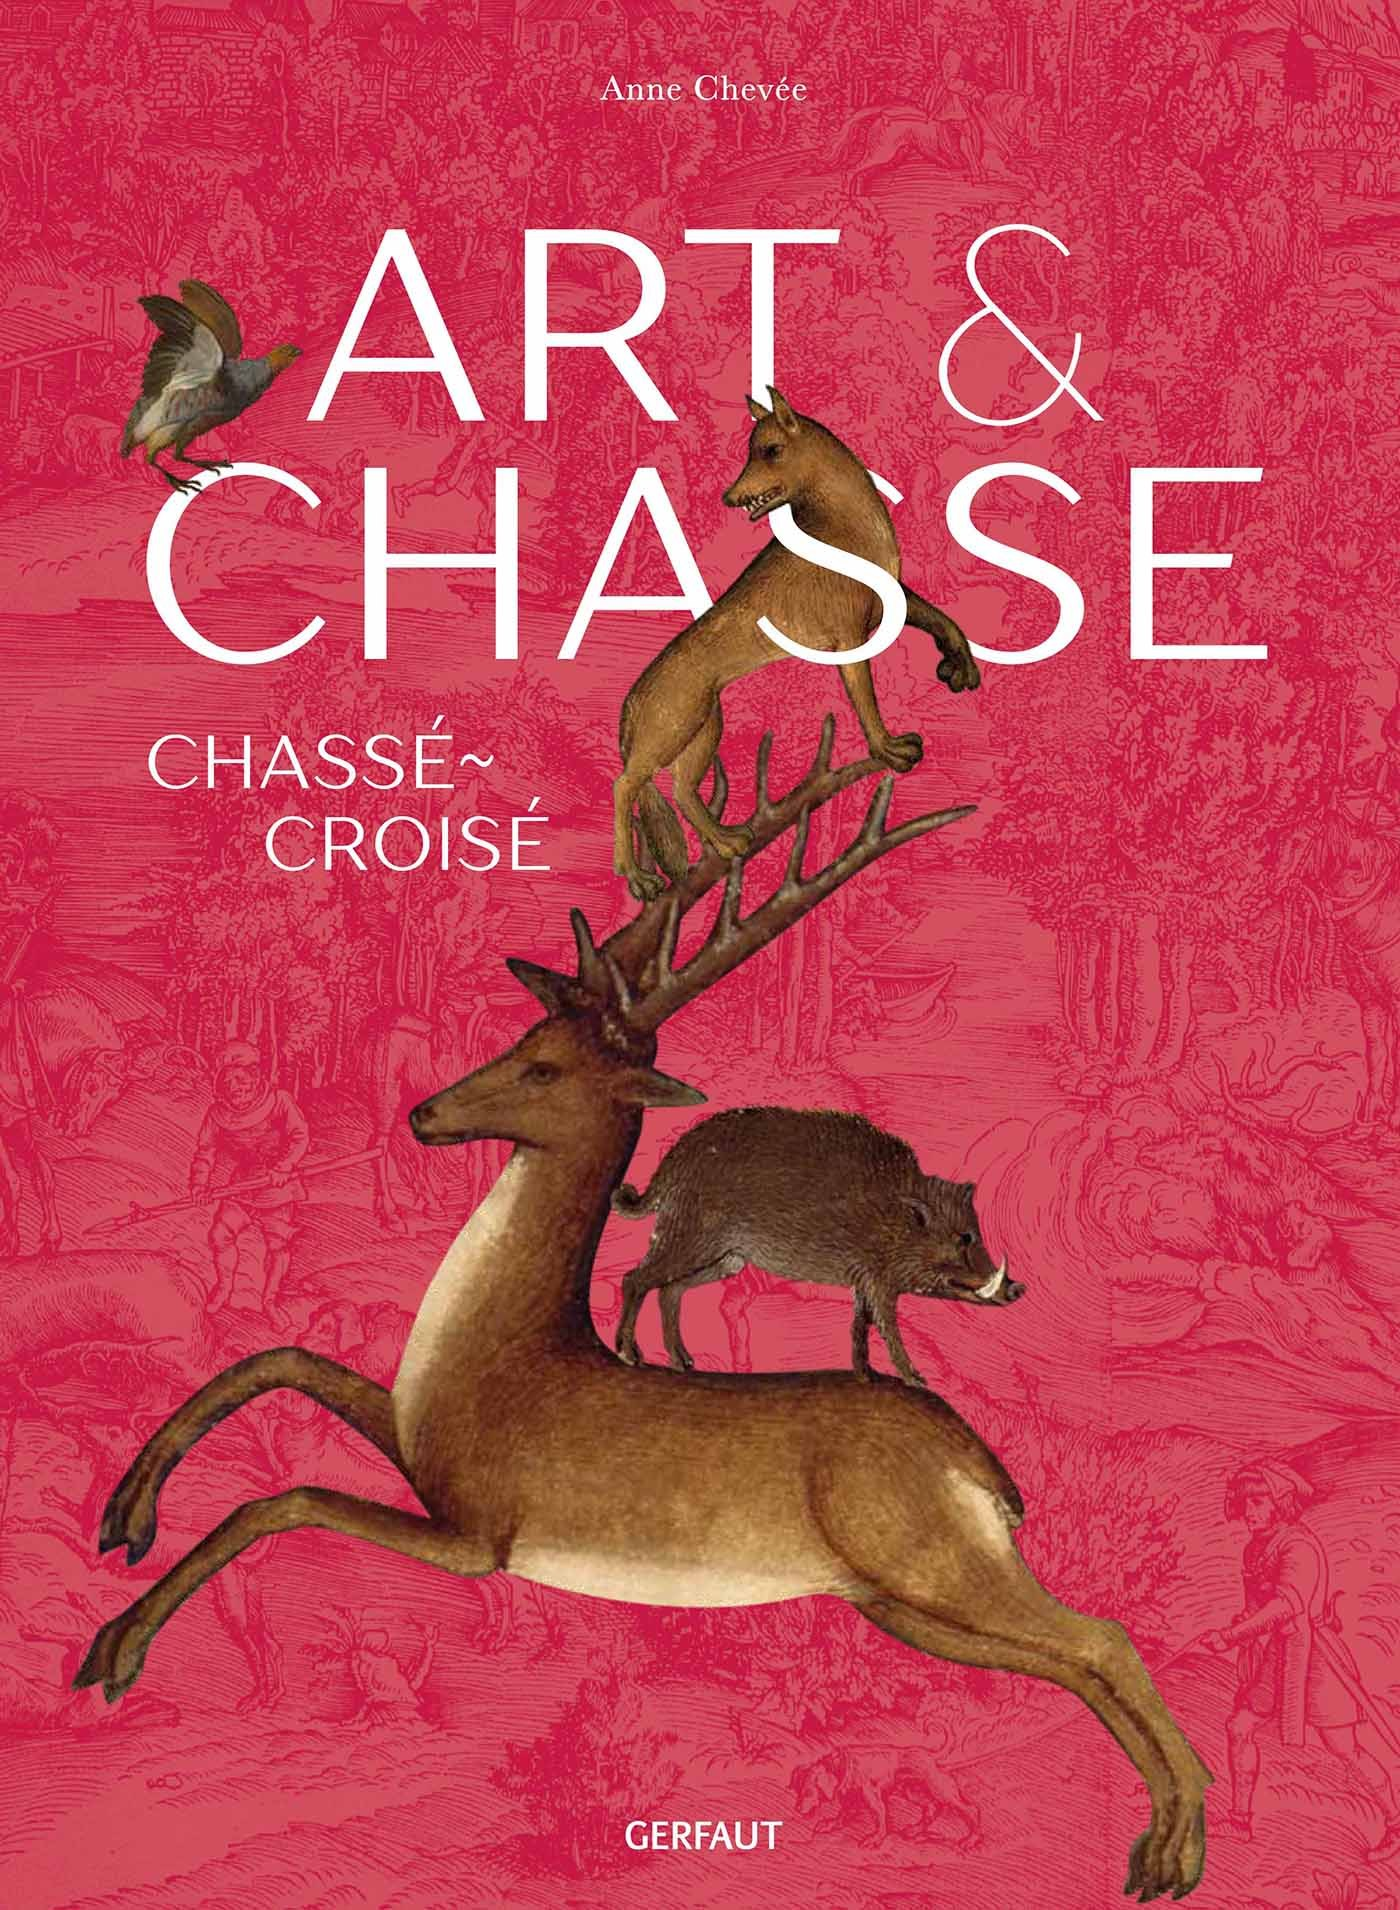 ART & CHASSE - CHASSE-CROISE